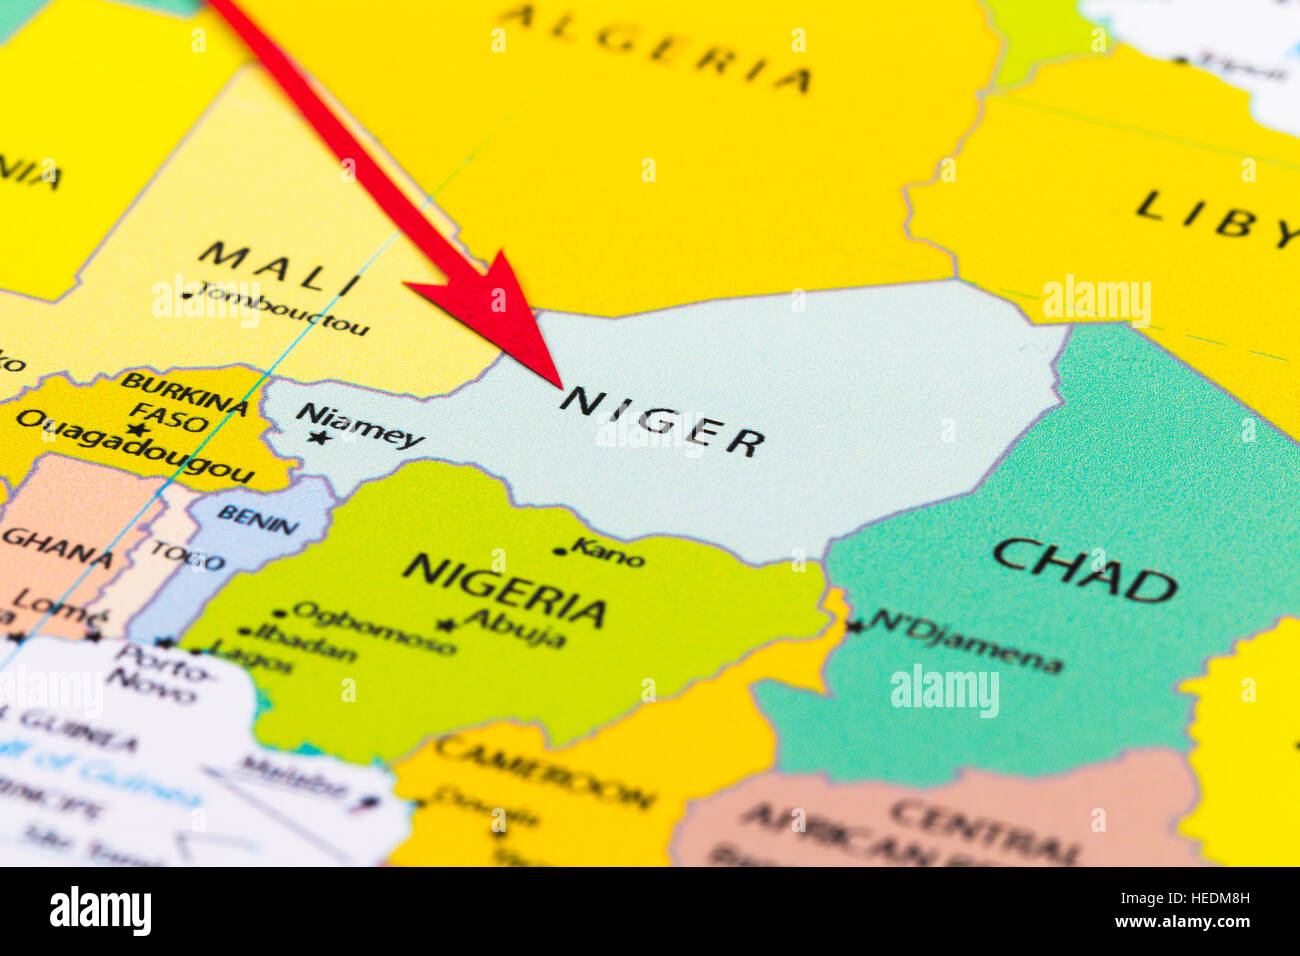 Red arrow pointing Niger on the map of Africa continent ... on map of sz, map of sh, map of ei, map of mh, map of gh, map of ke, map of re, map of air force bases overseas, map of asia, map of gl, map of afganis, map of cl, map of africa, map of ci, map of ggc, map of ic, map of sn, map of spangdahlem air force base, map of afr, map of ta,